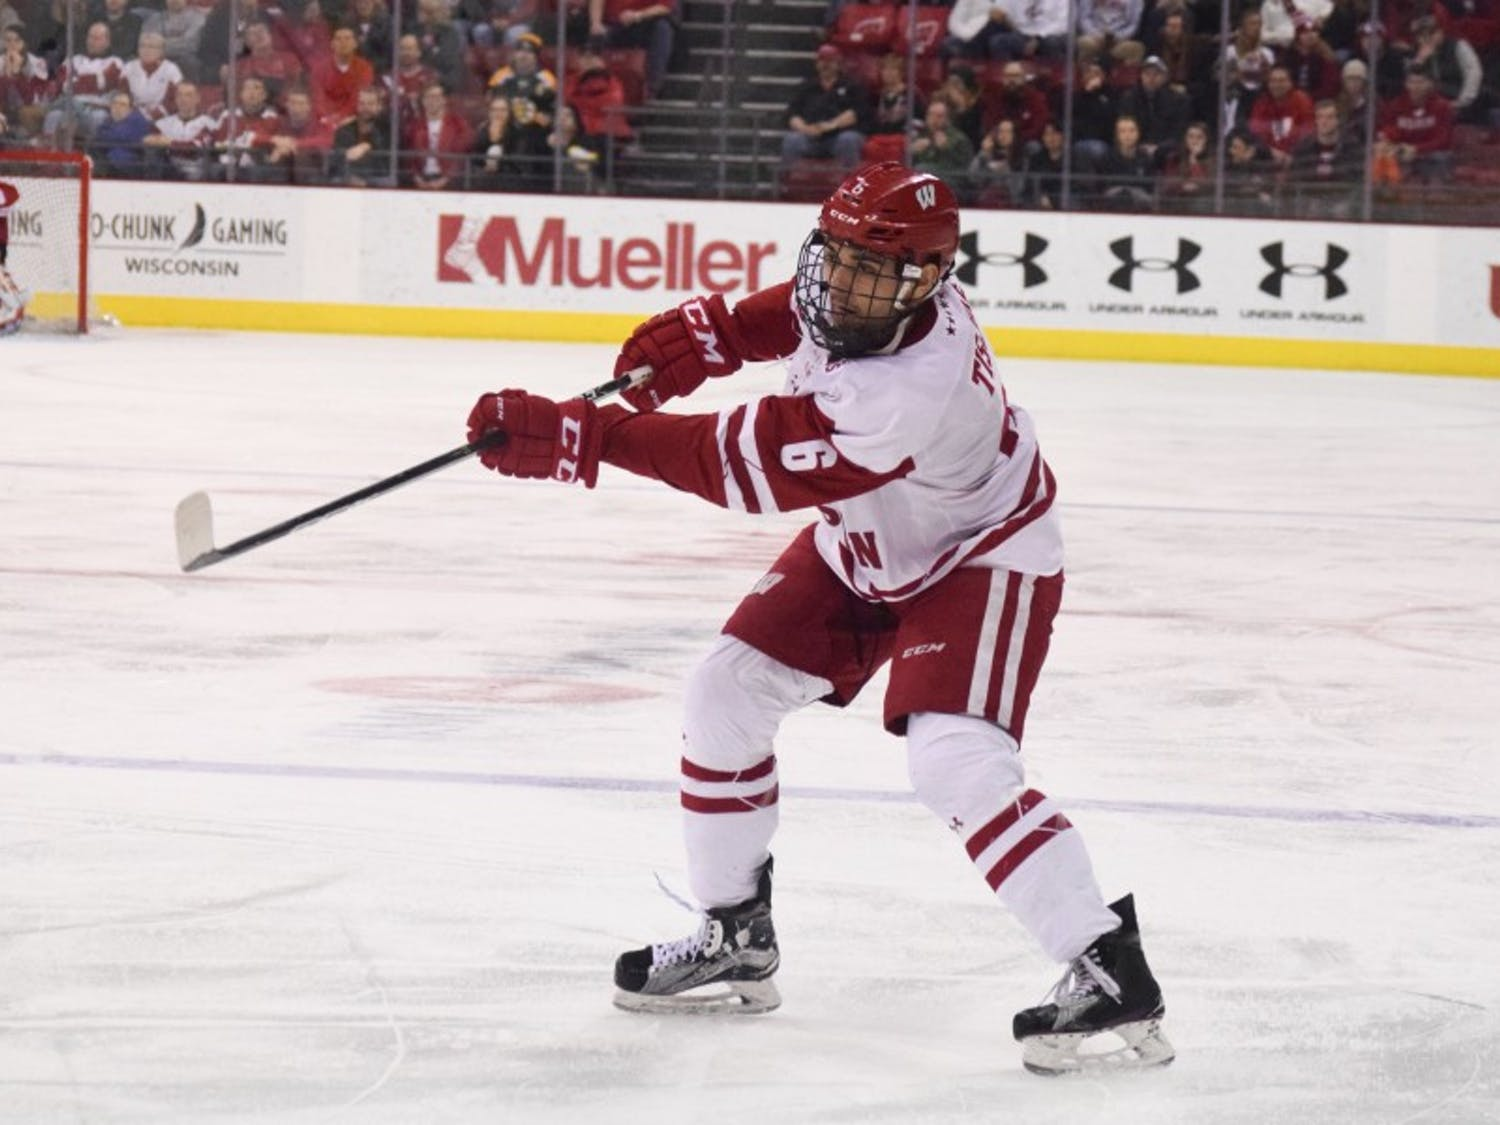 Junior Peter Tischke tied the game against Penn State with under two minutes to go on Saturday, but the Badgers could only manage one point in the Big Ten standings after losing the shootout. PSU earned five of six points for the weekend.